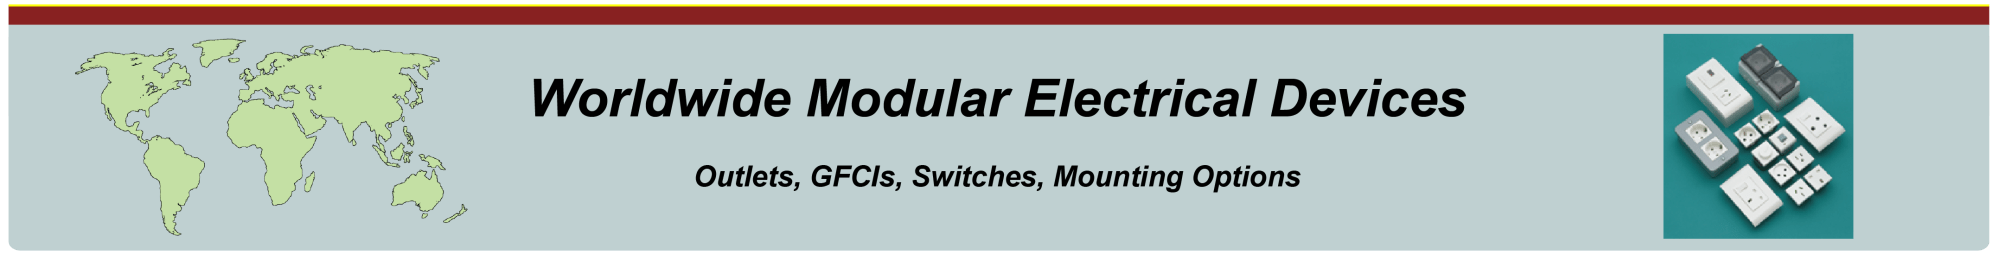 hight resolution of modular electrical devices